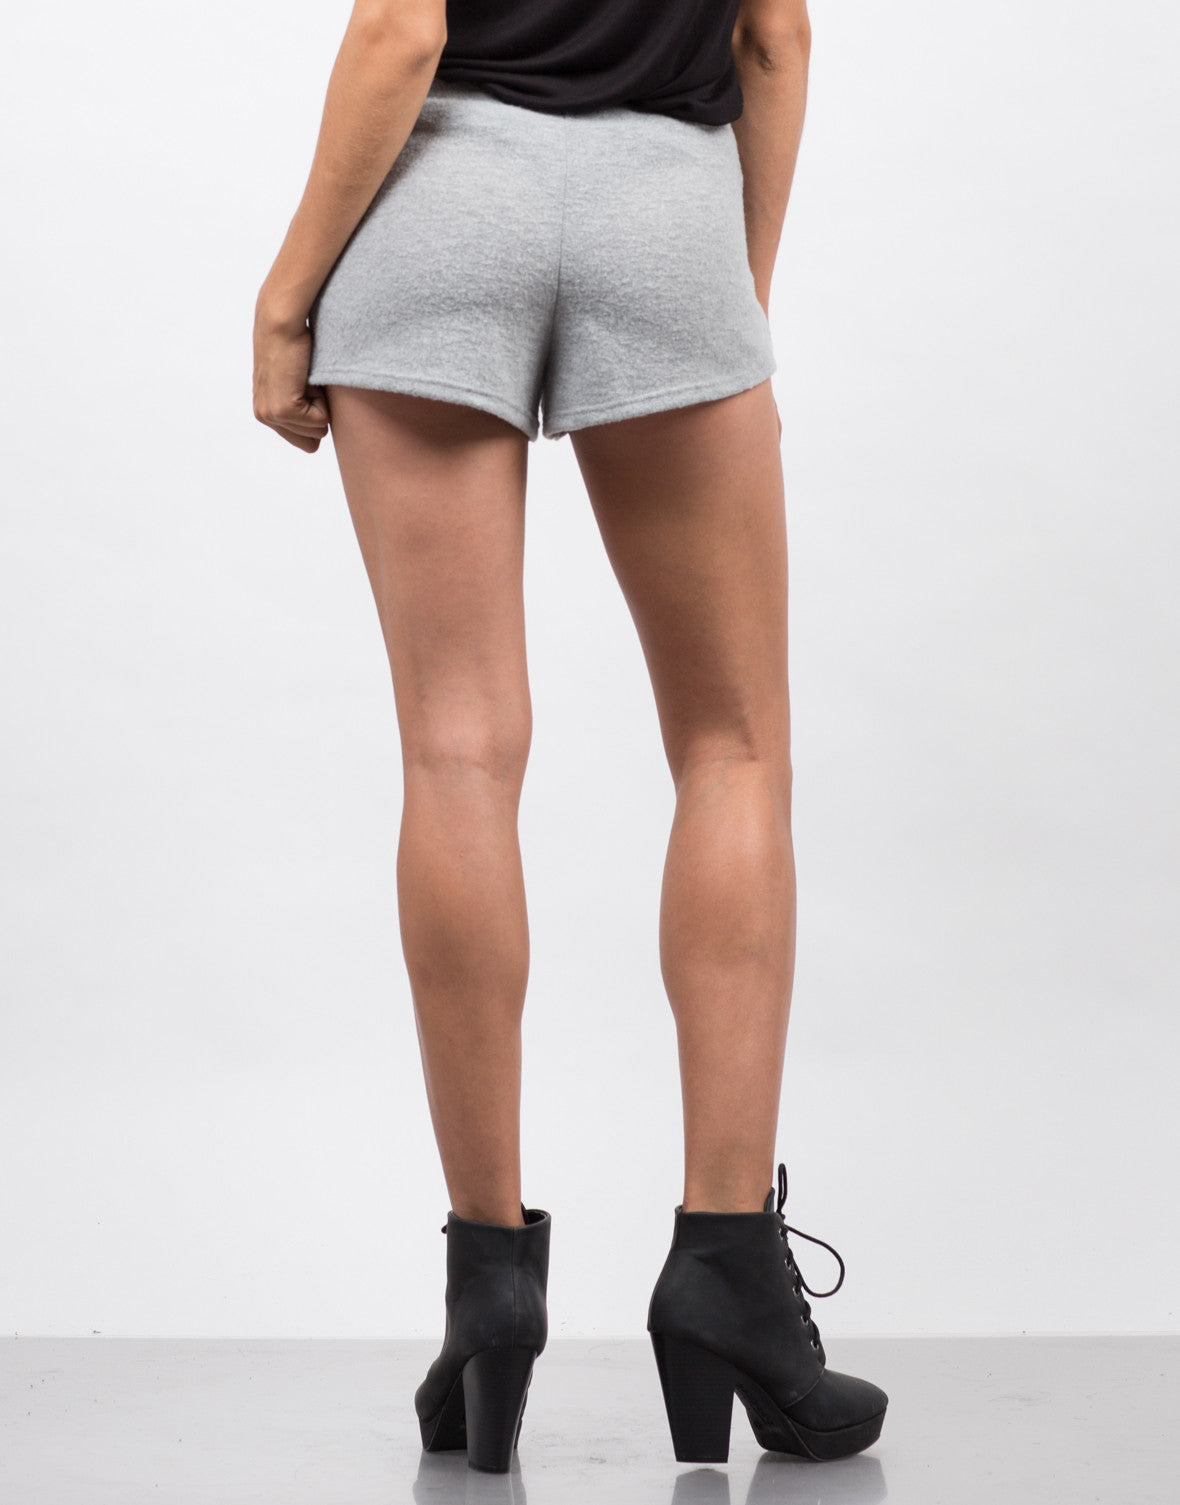 Back View of Soft Fleece Shorts